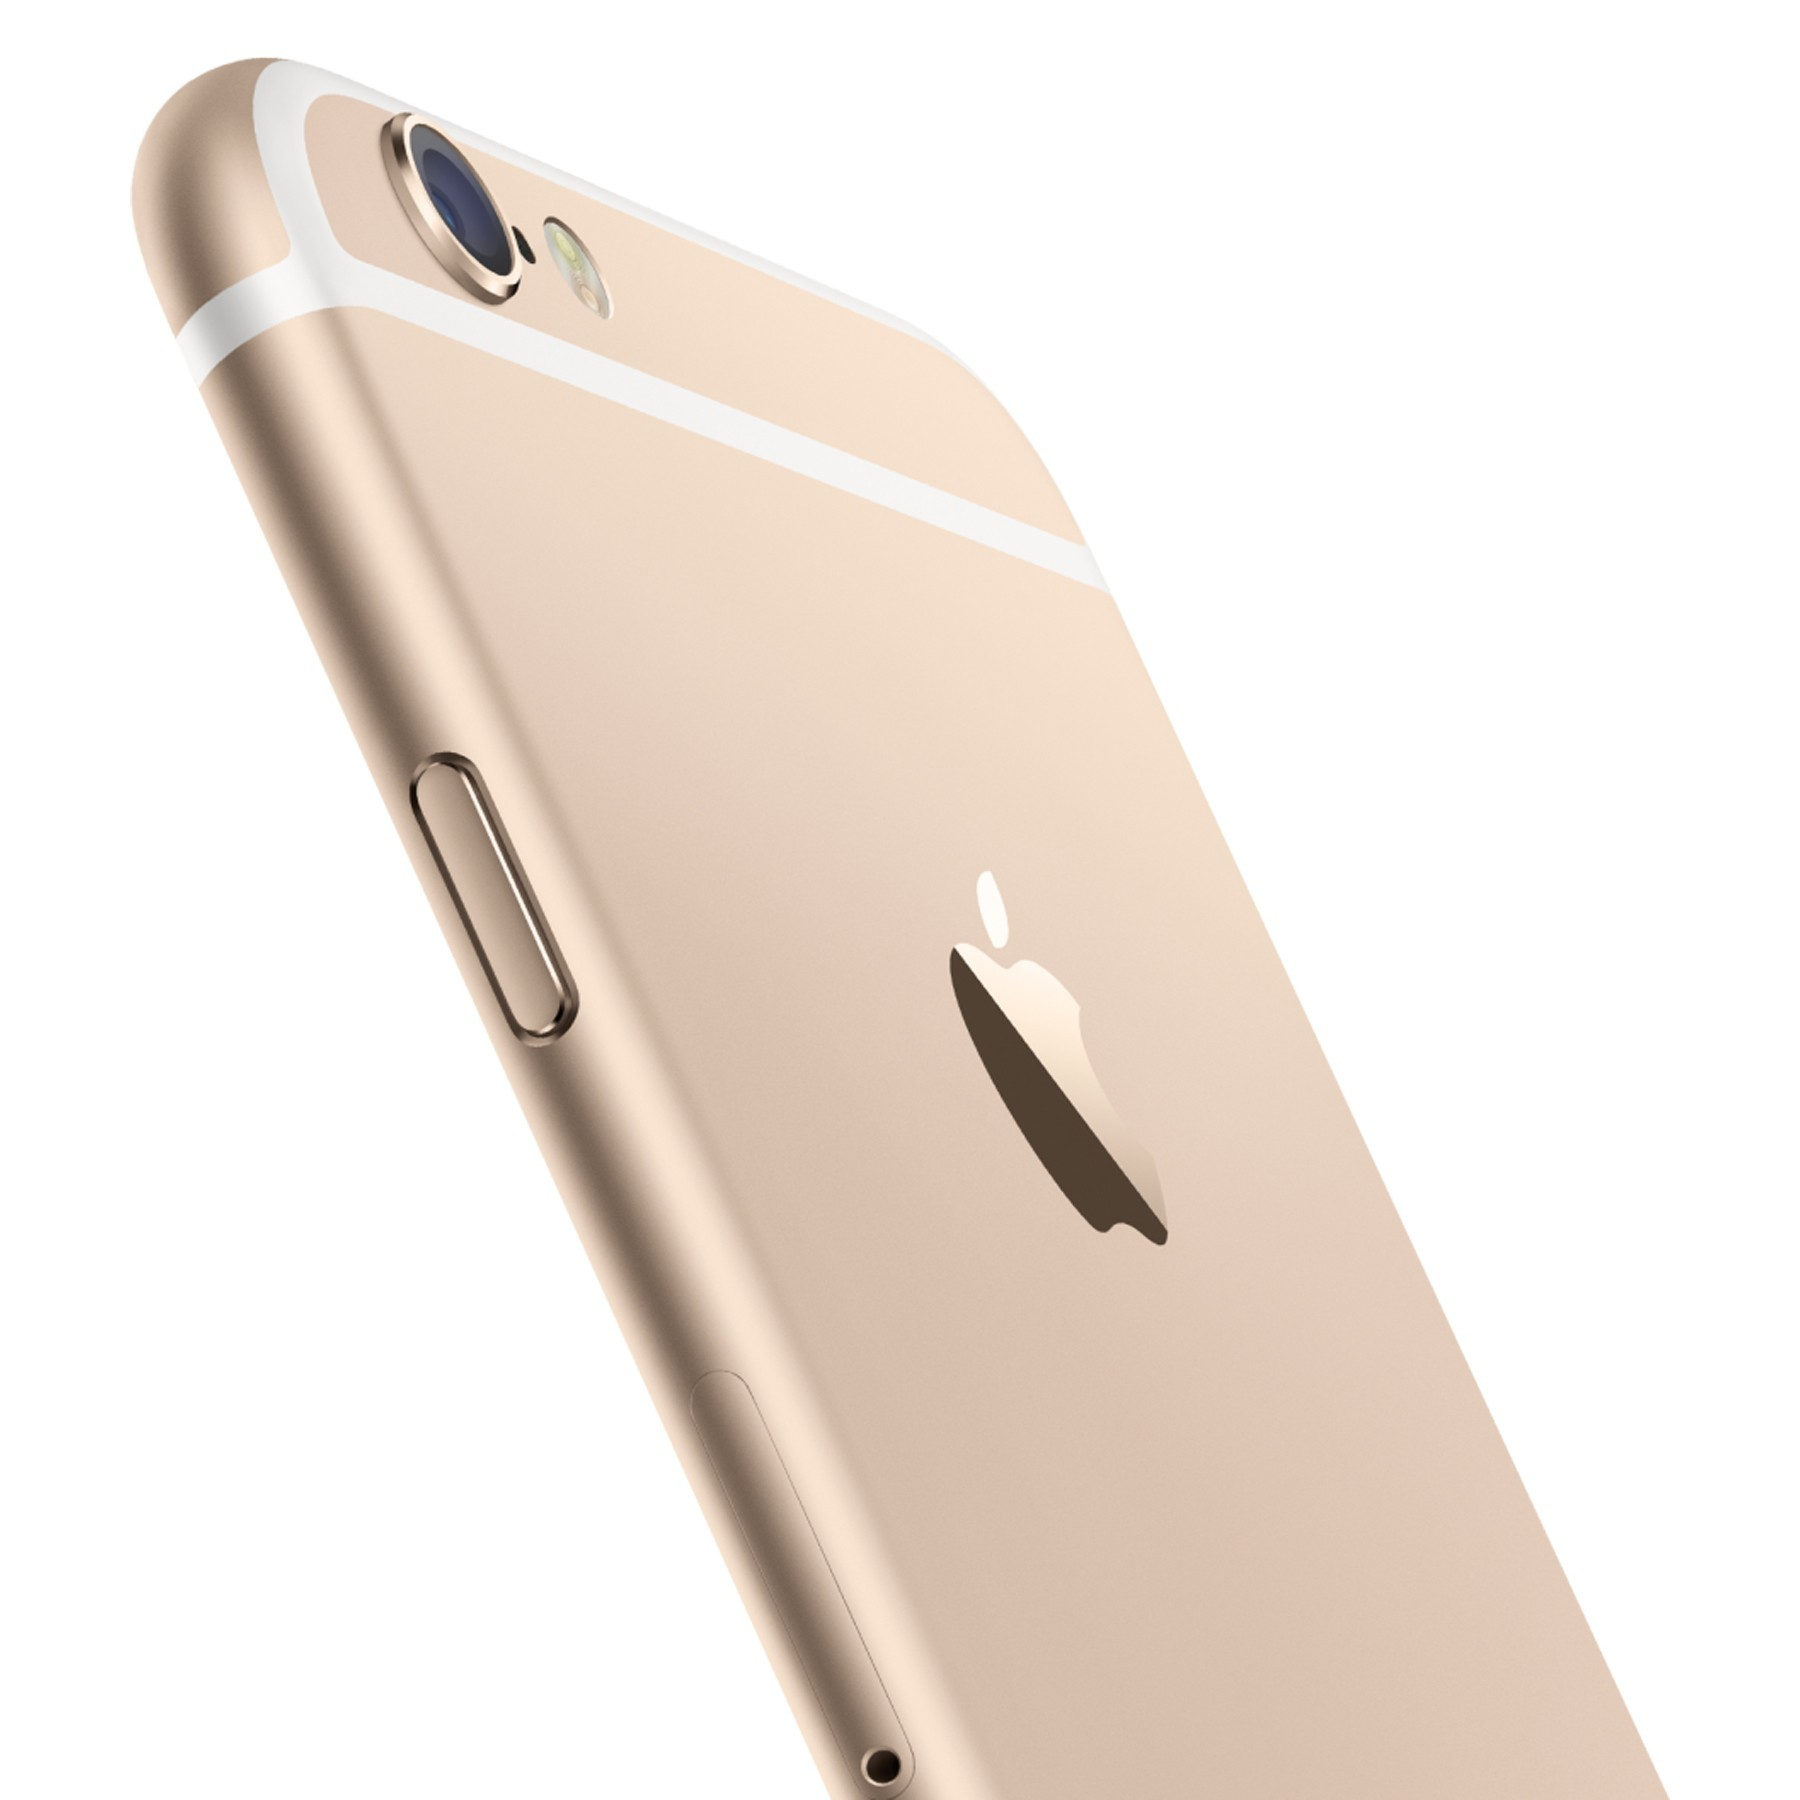 iPhone 6 Plus 128G Gold Ảnh số 38367780